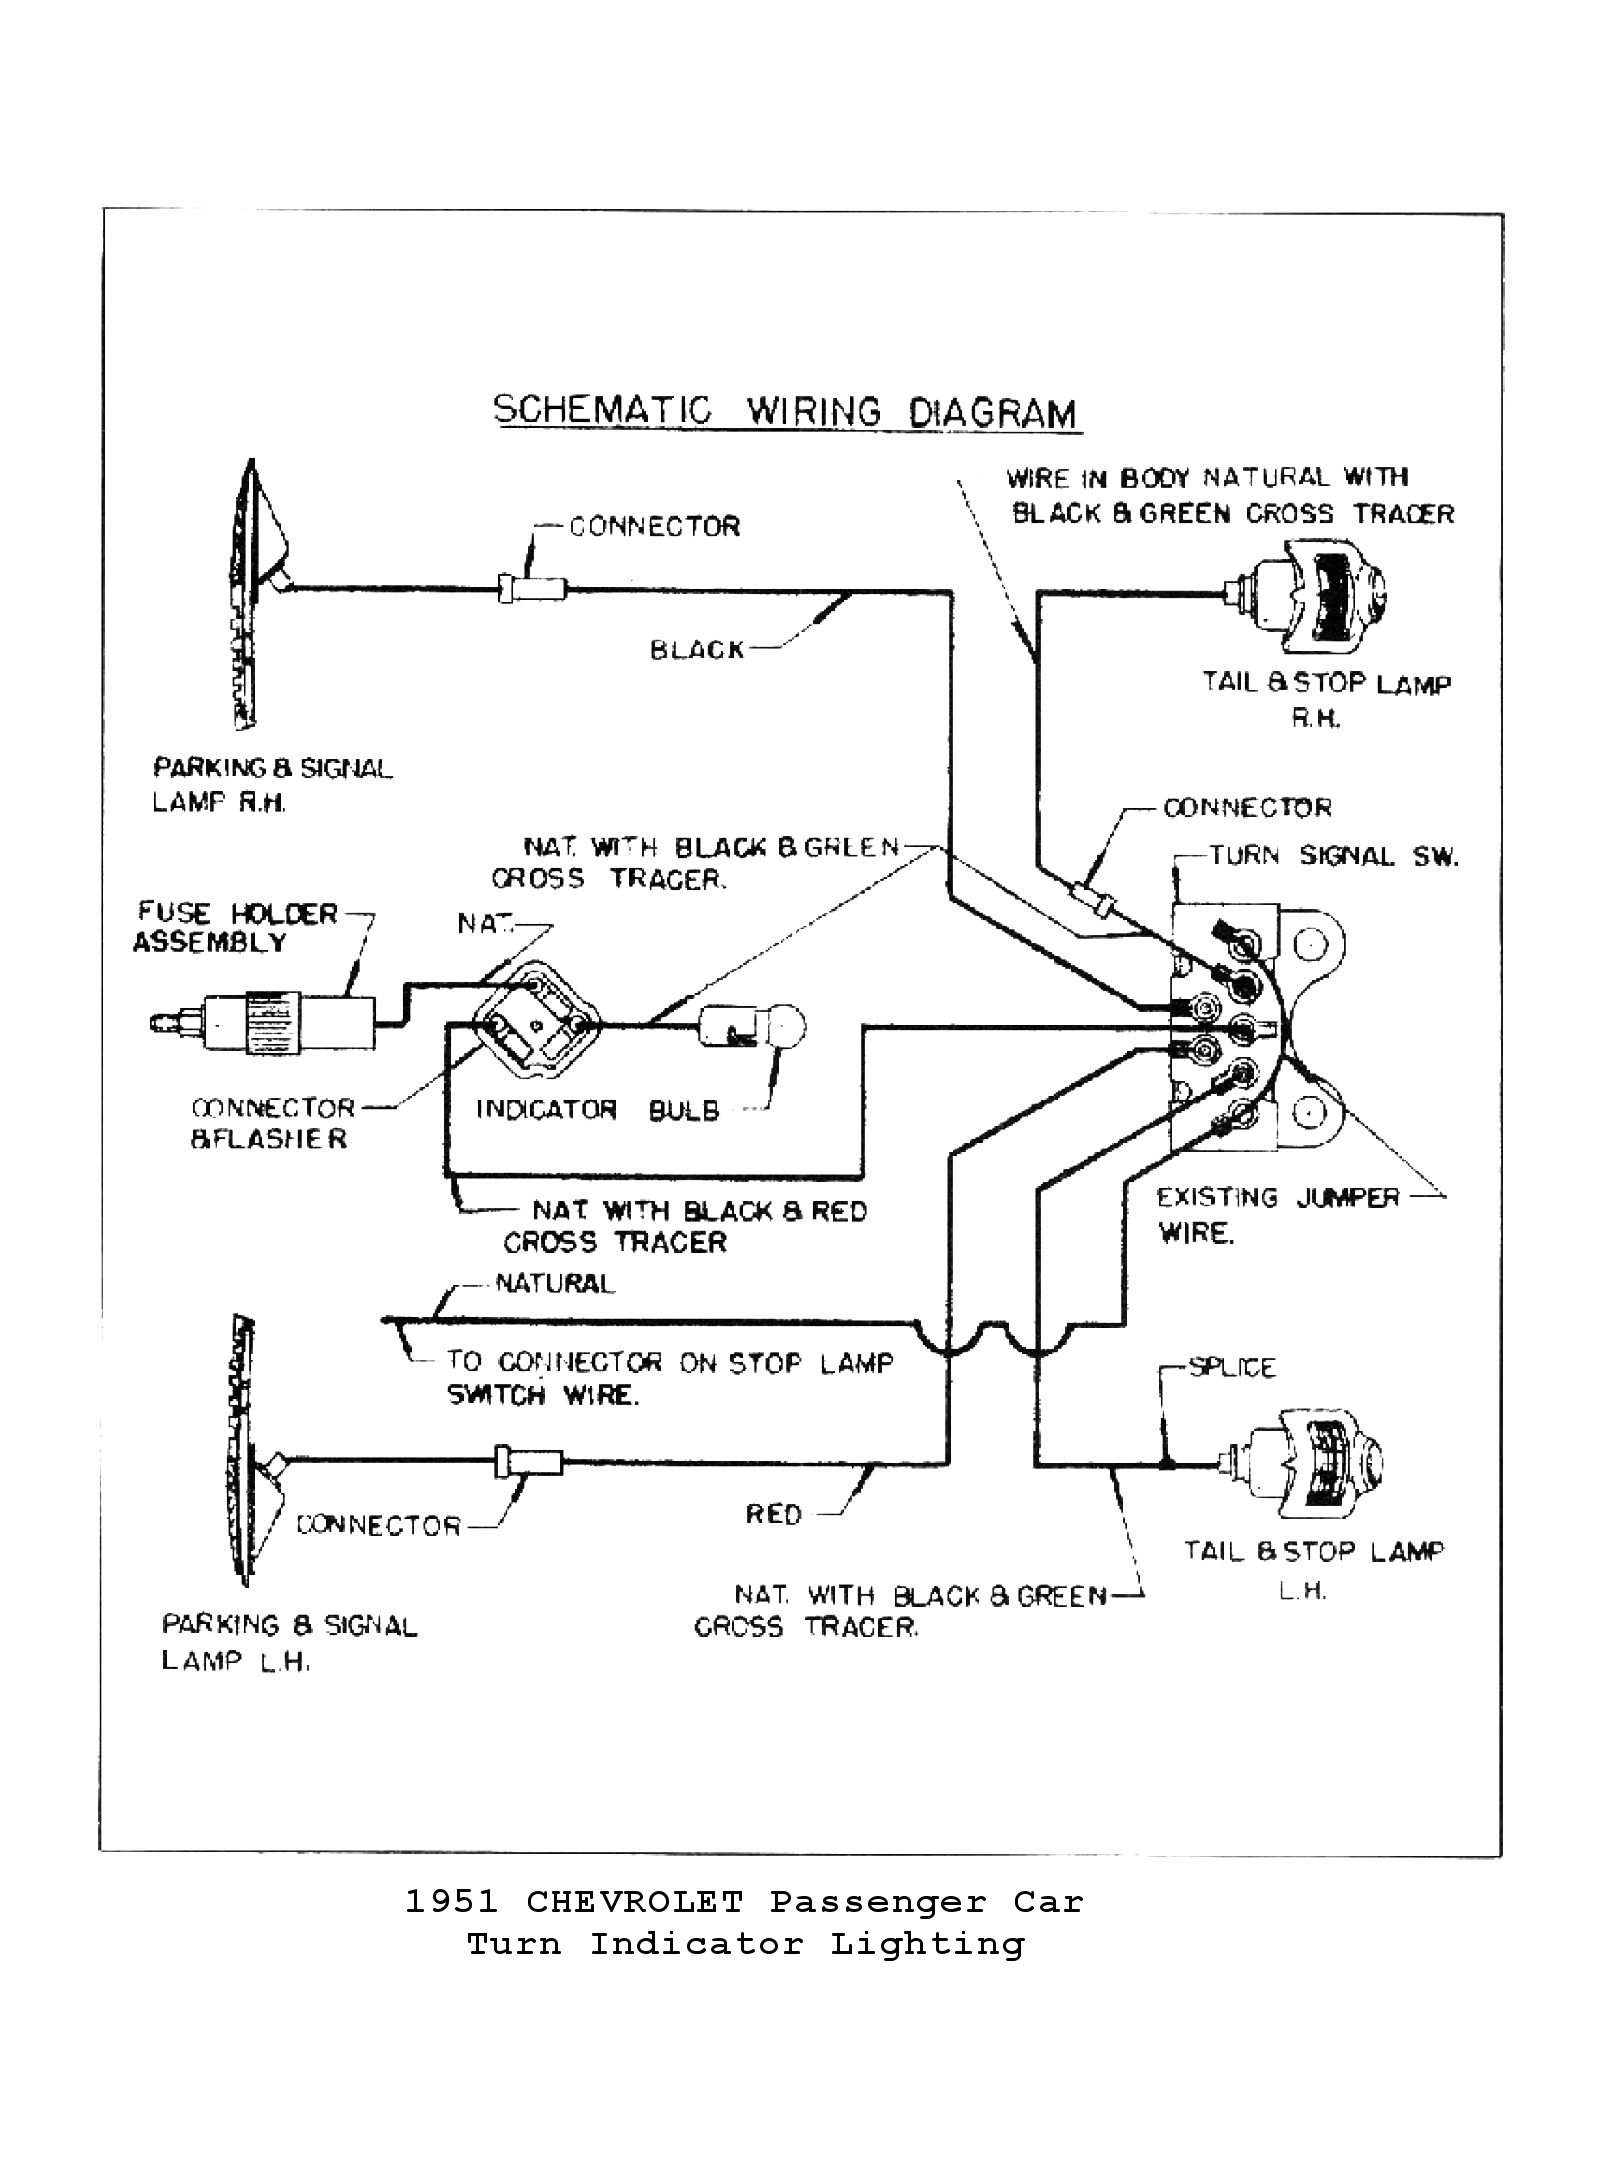 5152turnsignals 55 chevy heater diagram wiring schematic wiring diagram simonand 66 Chevy Headlight Switch Wiring Diagram at reclaimingppi.co